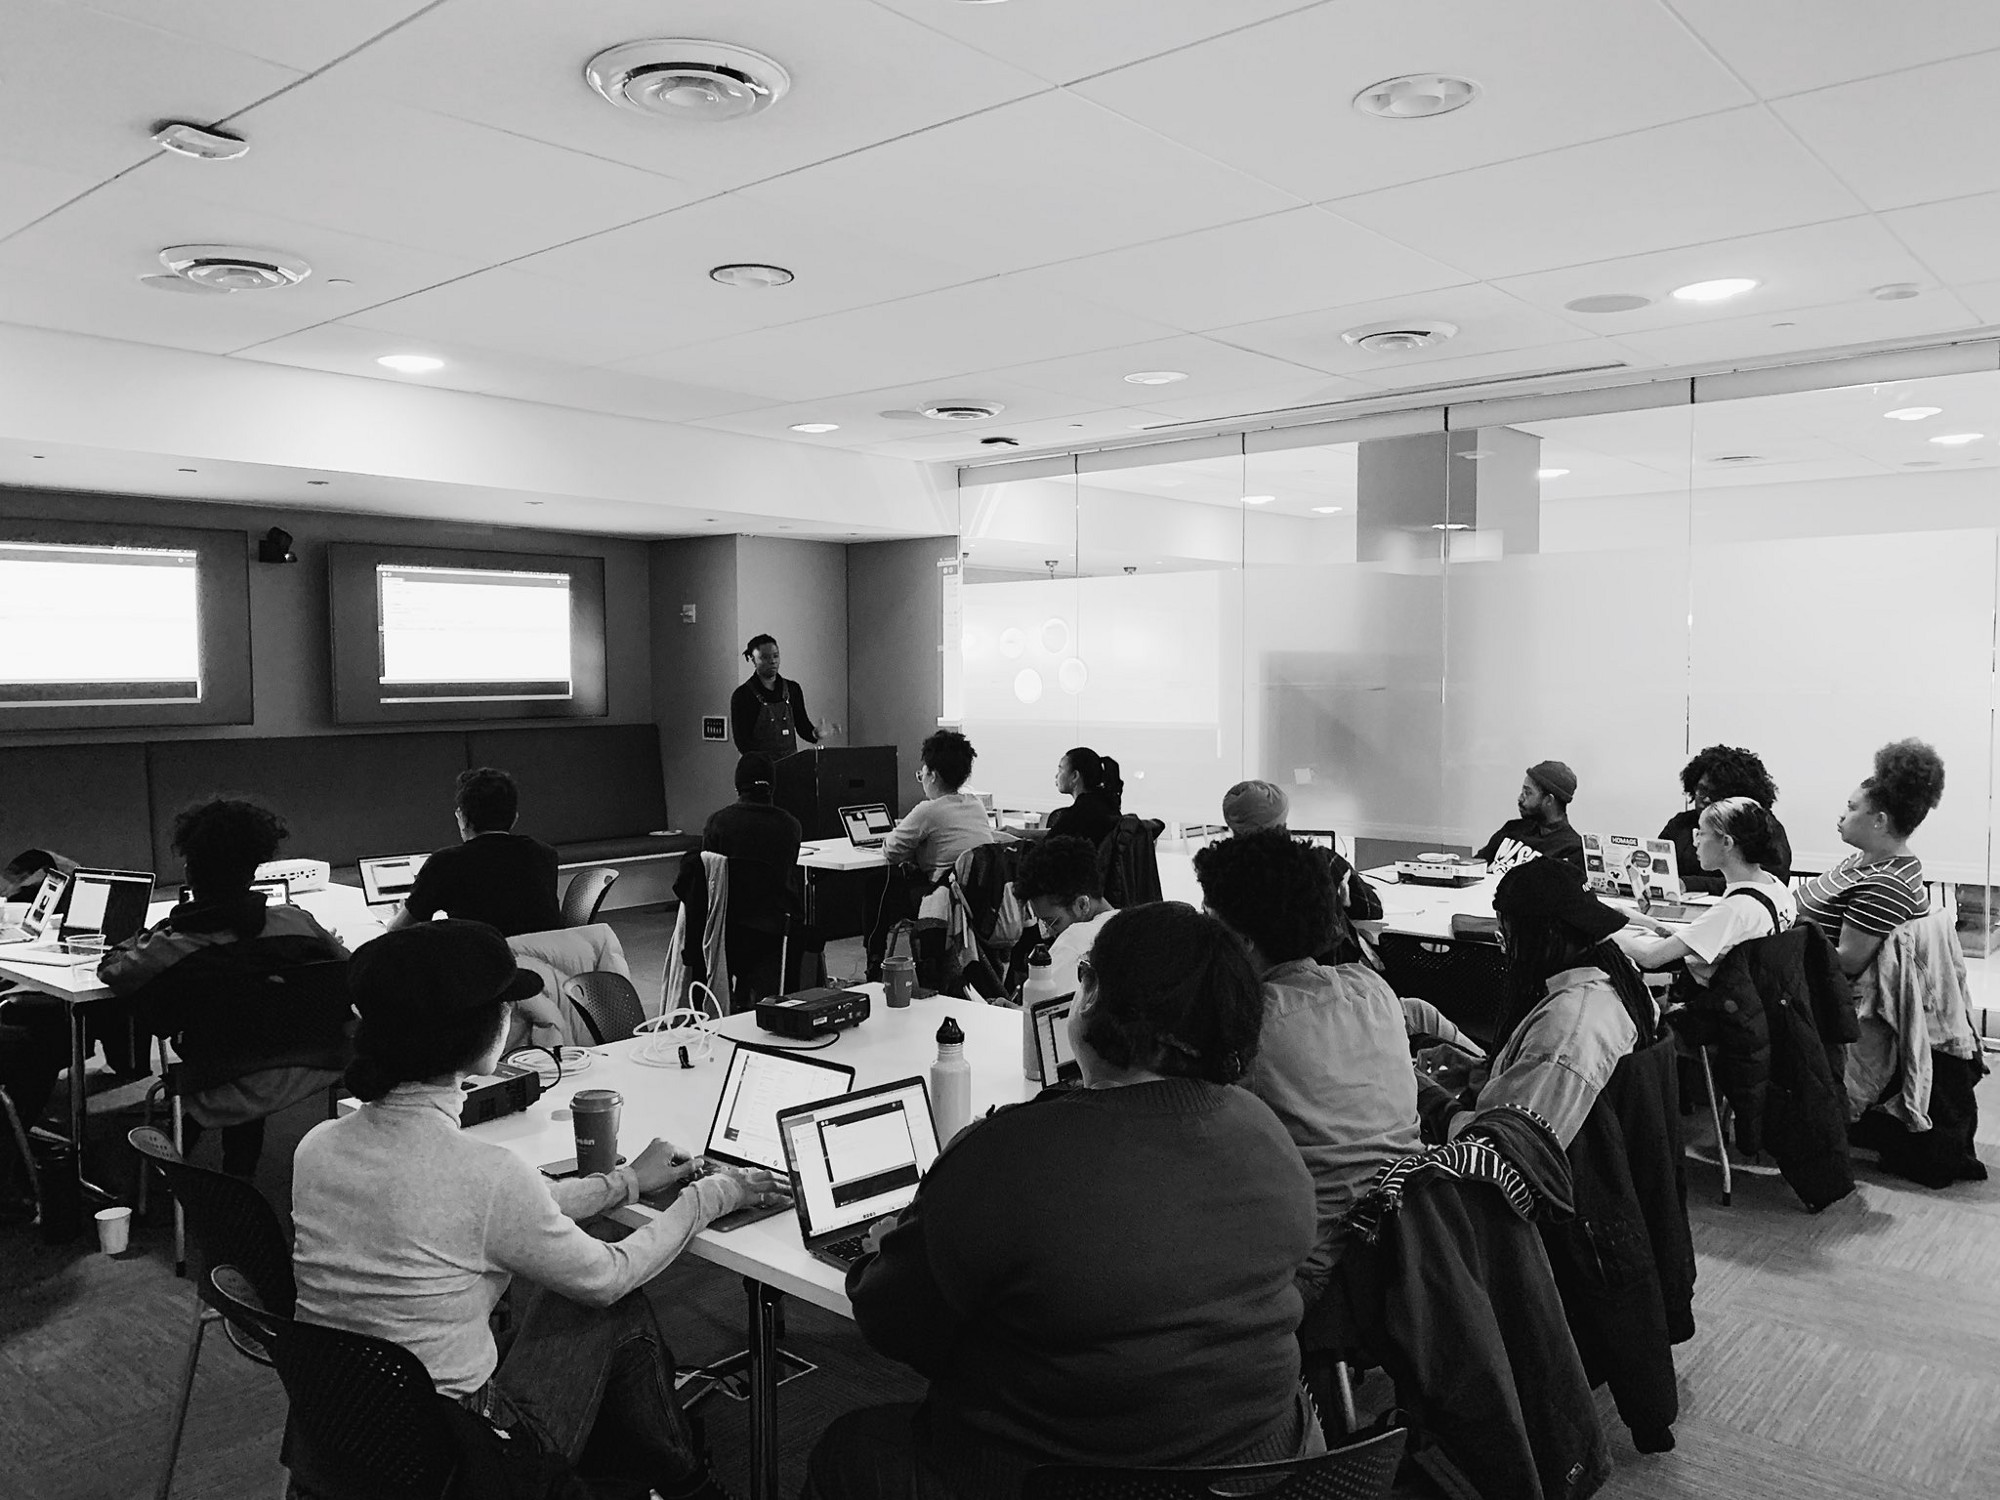 Black & white photo of a classroom filled with two dozen students at laptops. A Black man teaches at the front of the class.